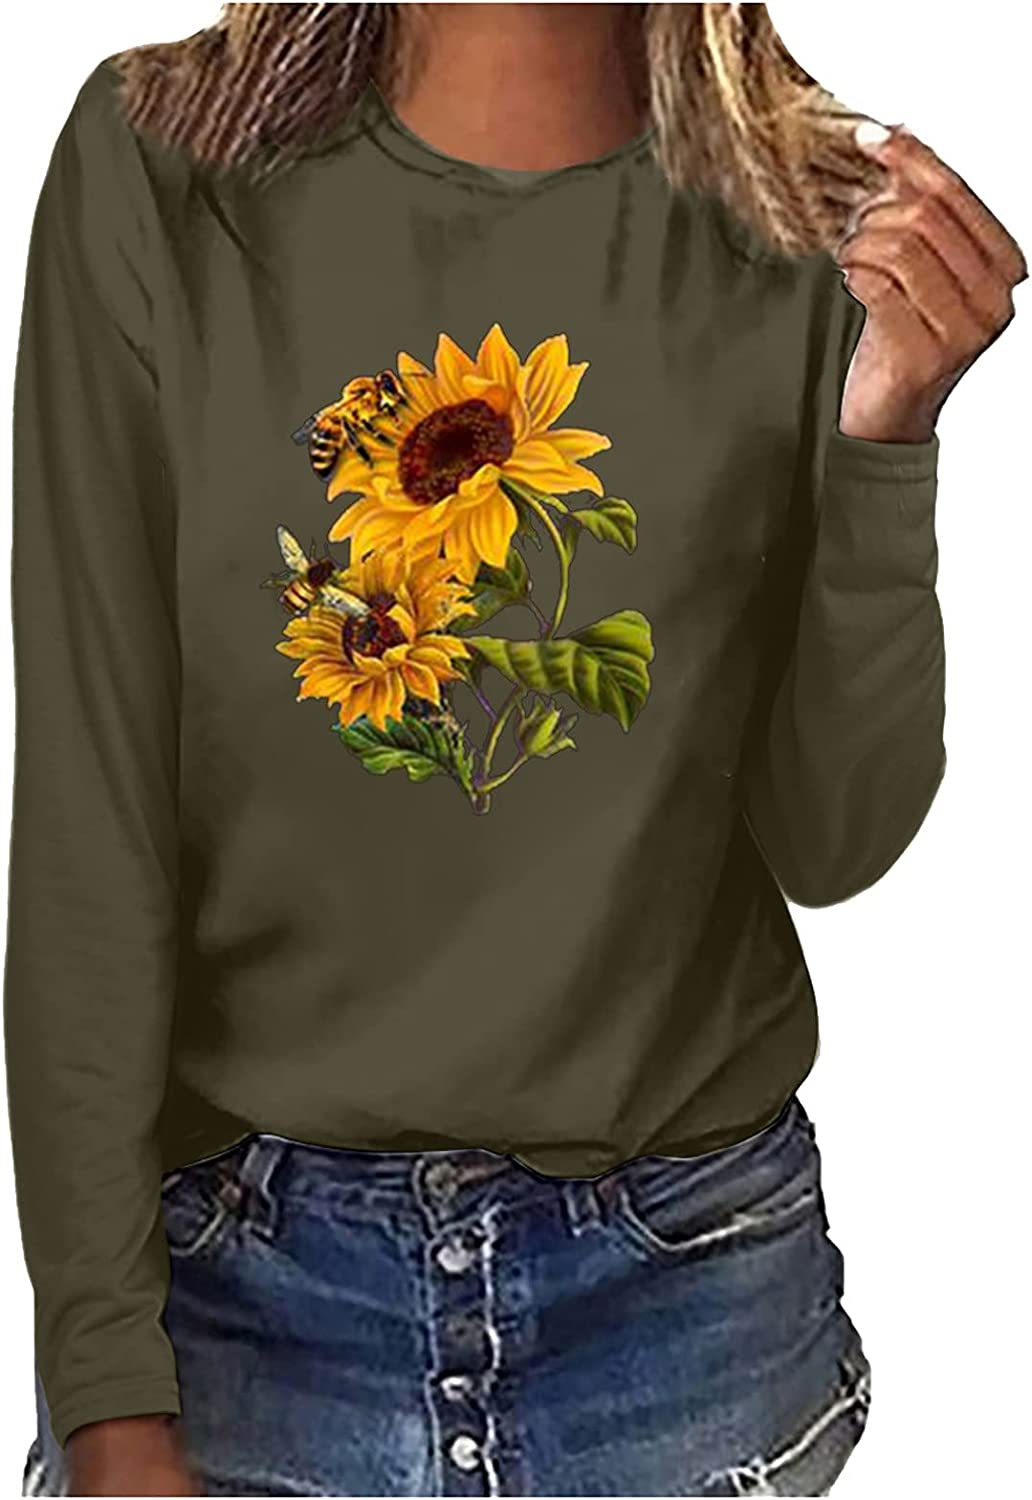 Women Autumn Casual Tops Long Sleeve Slim Sunflower Priented Blouse Crew-Neck Swing Novelty Shirts Comfy Newly Tshirts